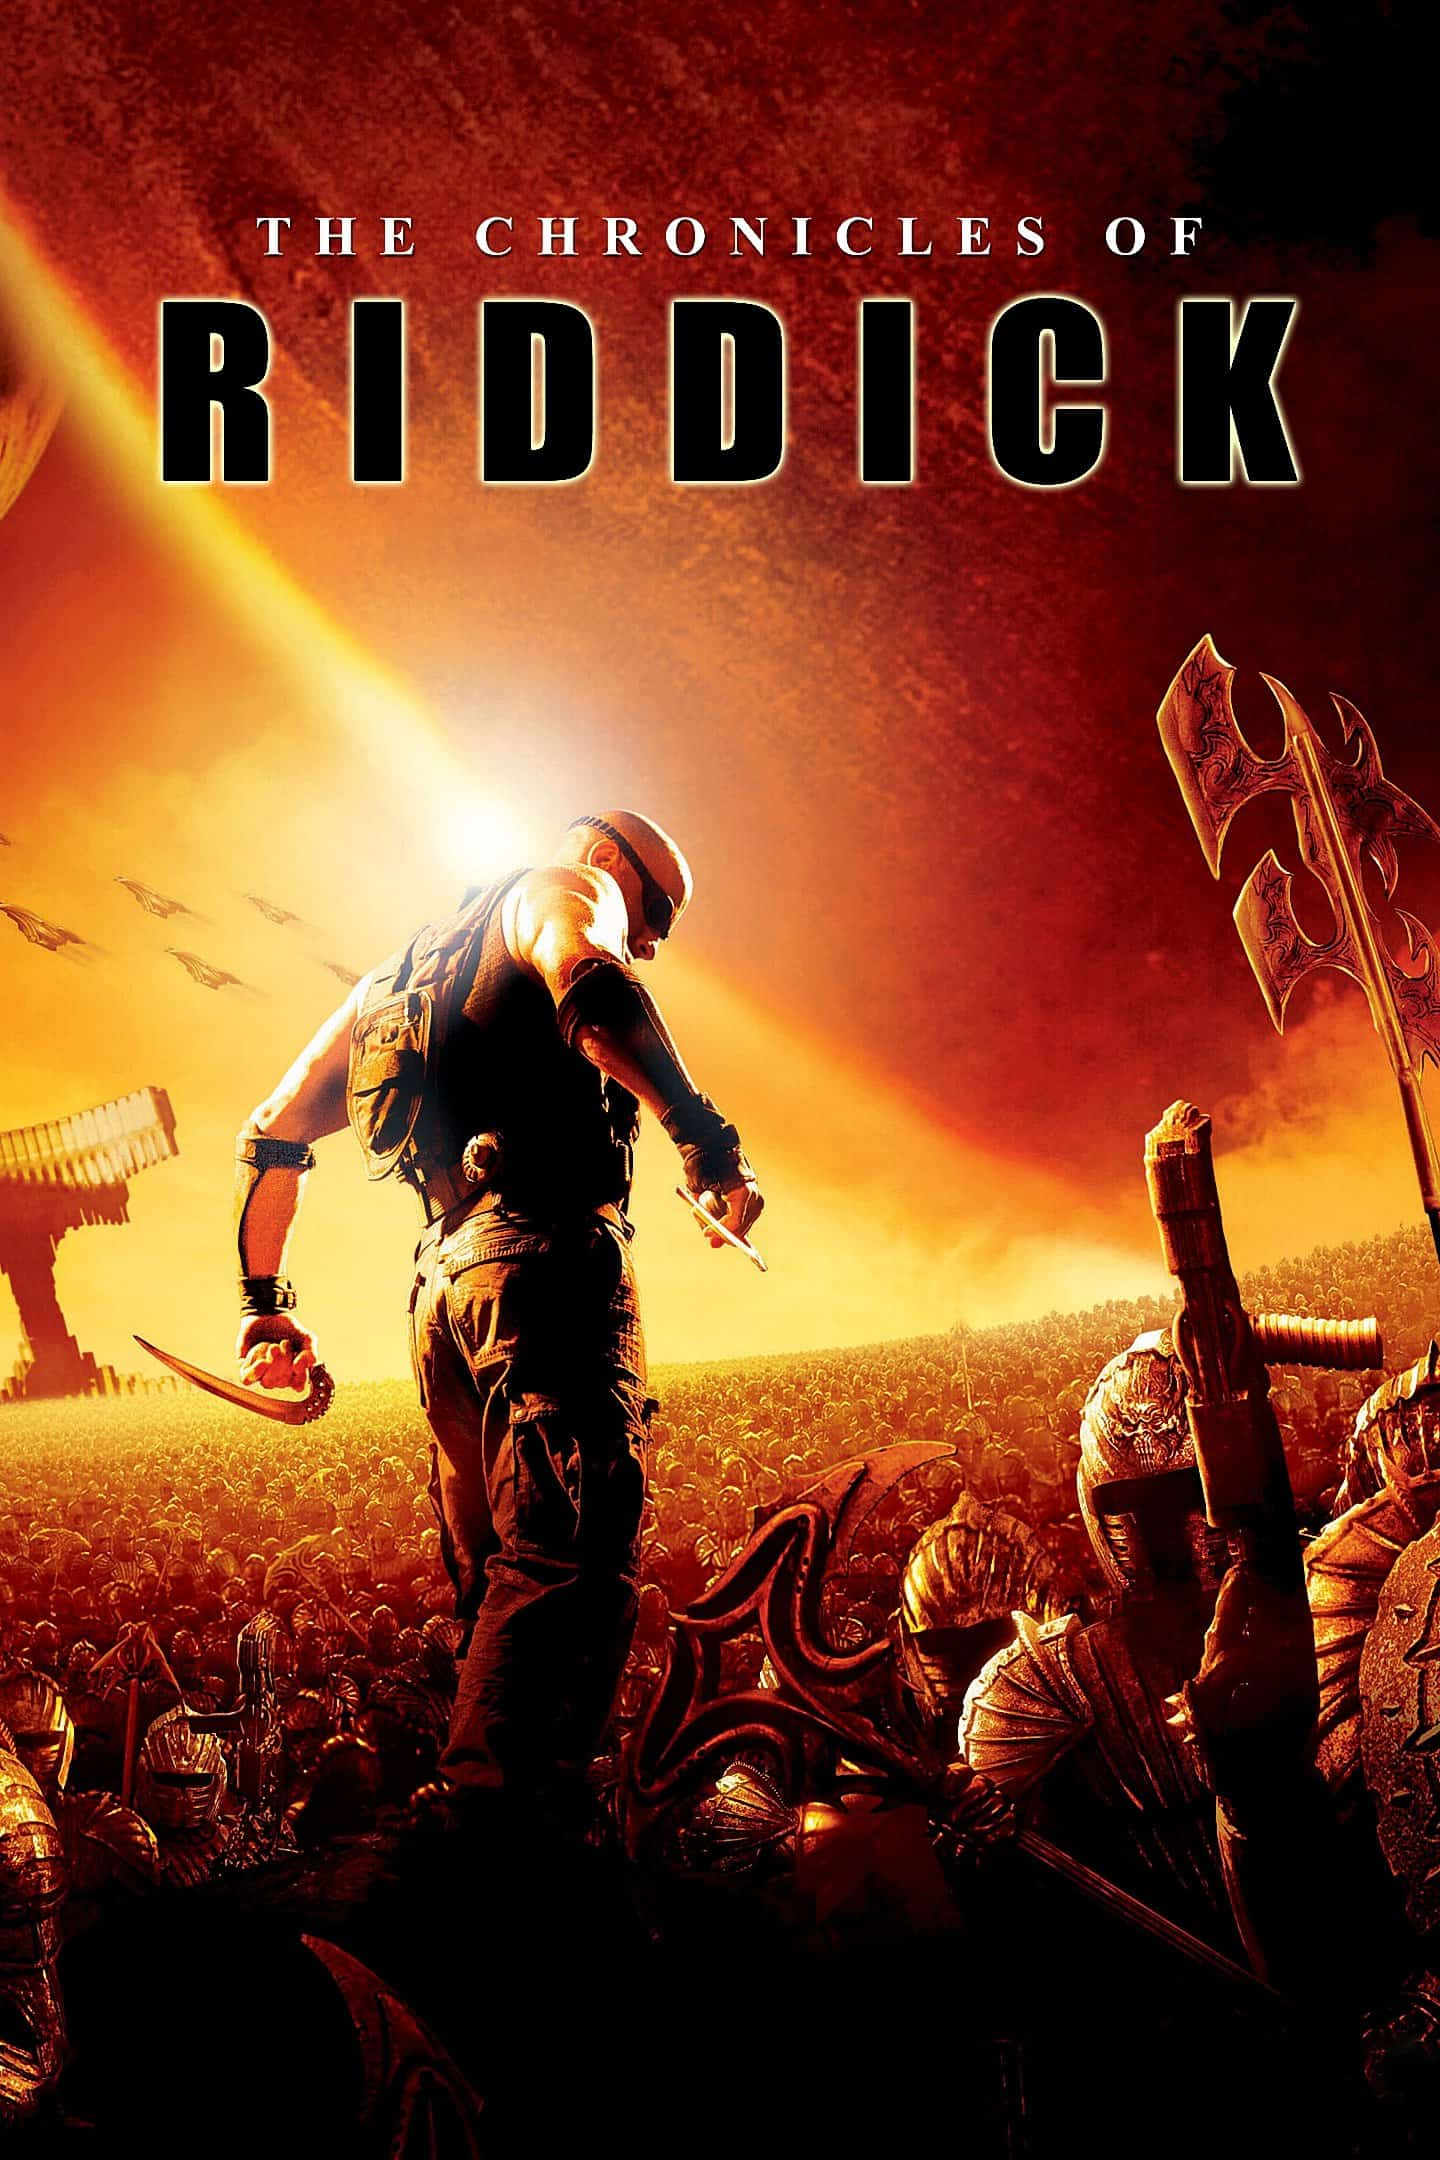 The Chronicles of Riddick, 2004